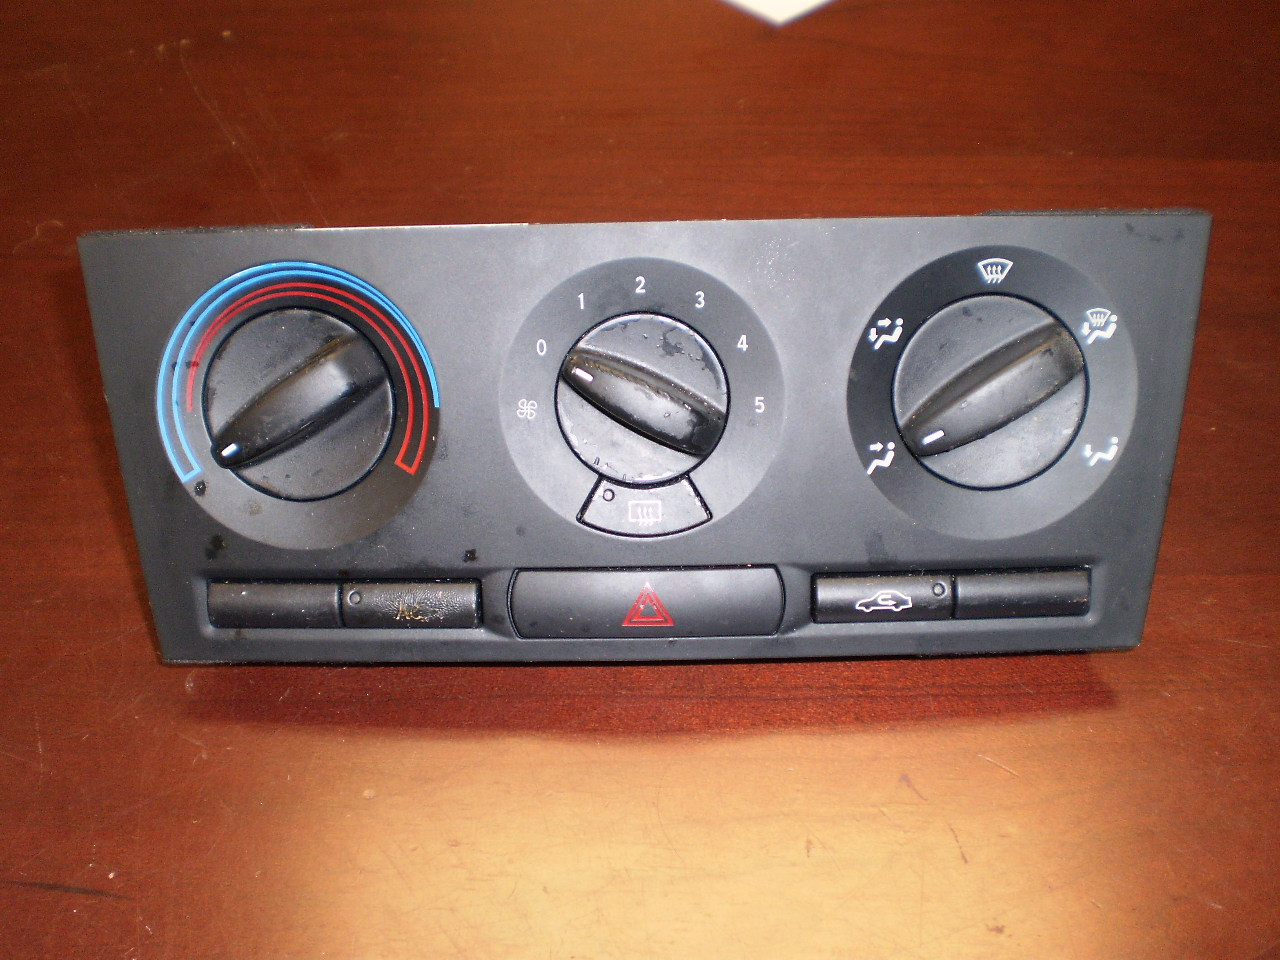 SAAB 9-3 Manual Temperature Control (03-07)